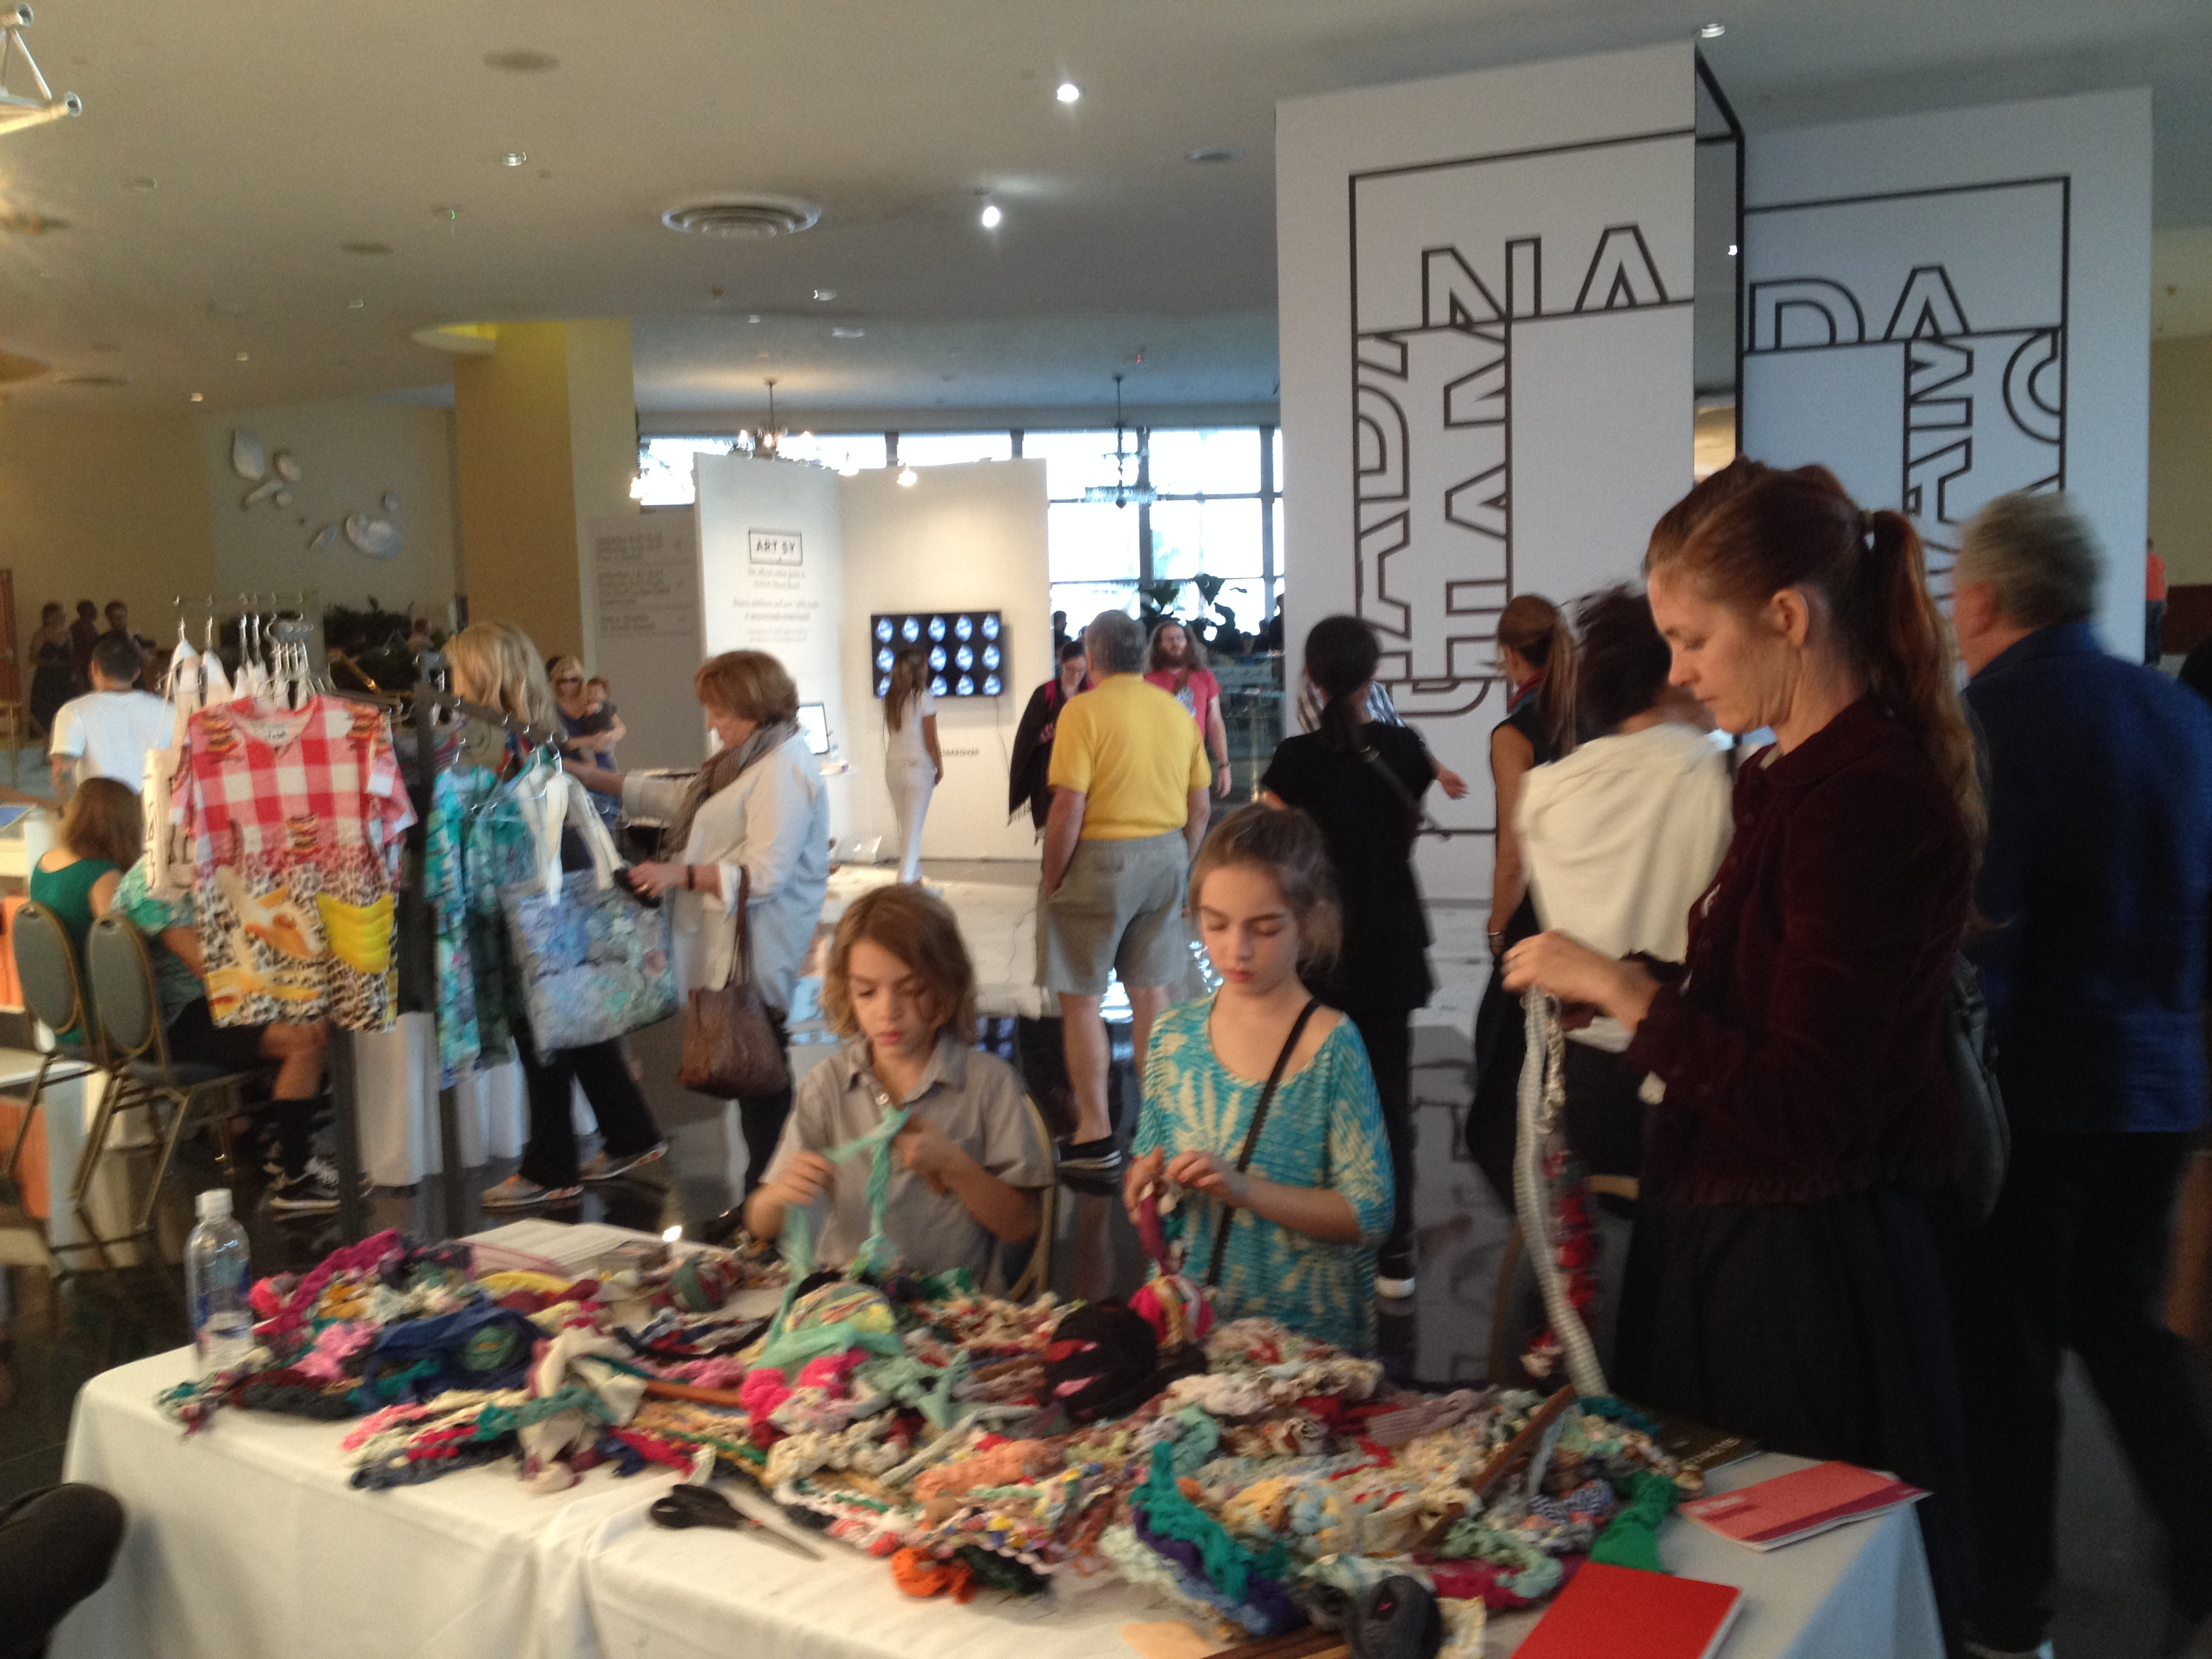 Ramekon O'Arwisters, Crochet Jam, NADA, Miami Beach, Florida 2014, Sponsored by Artadia